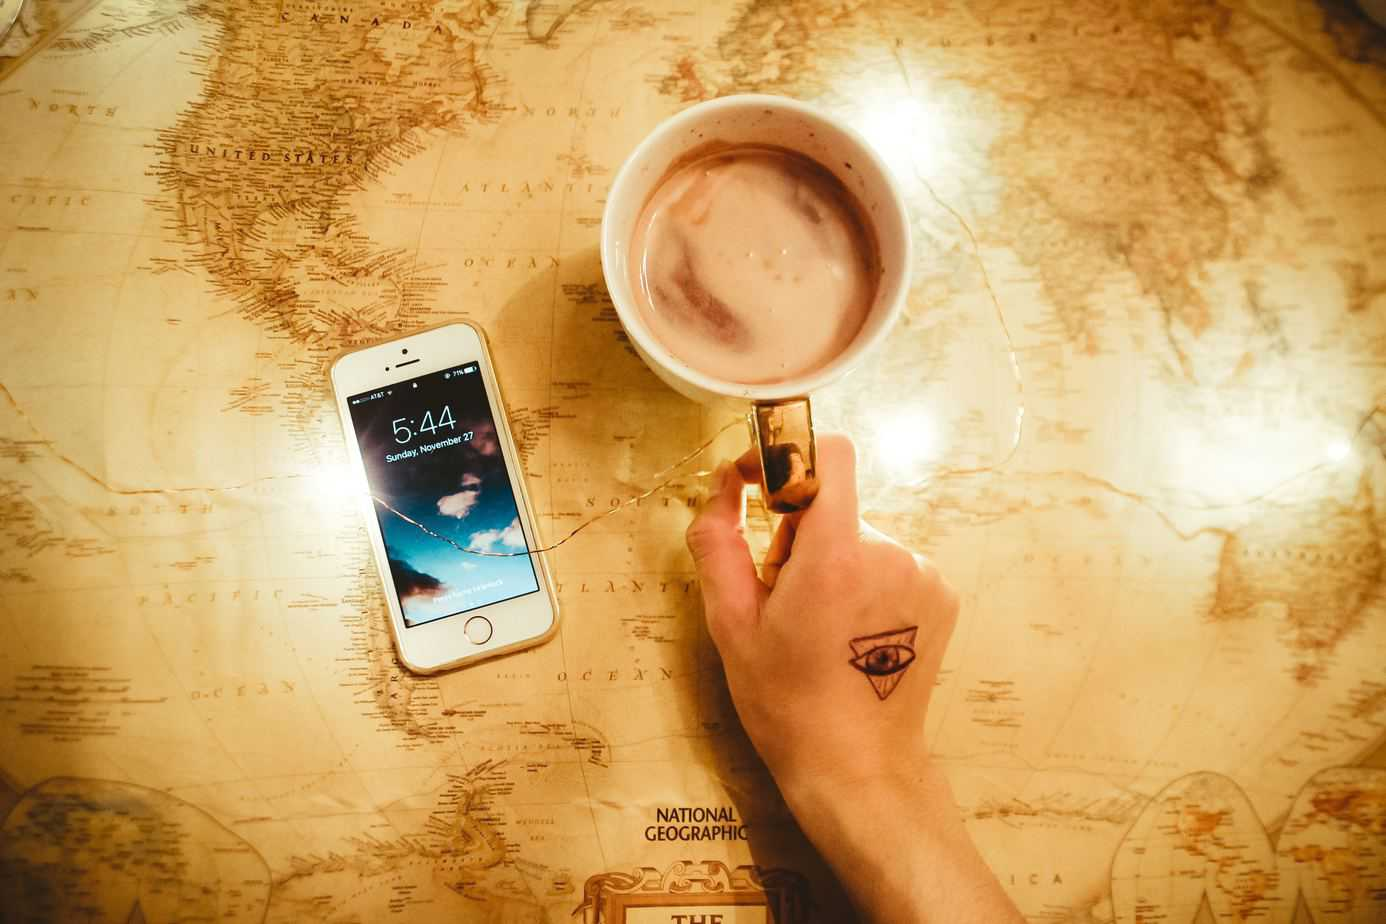 Person's hand holding a mug with coffee next to an iphone and on top of a world map